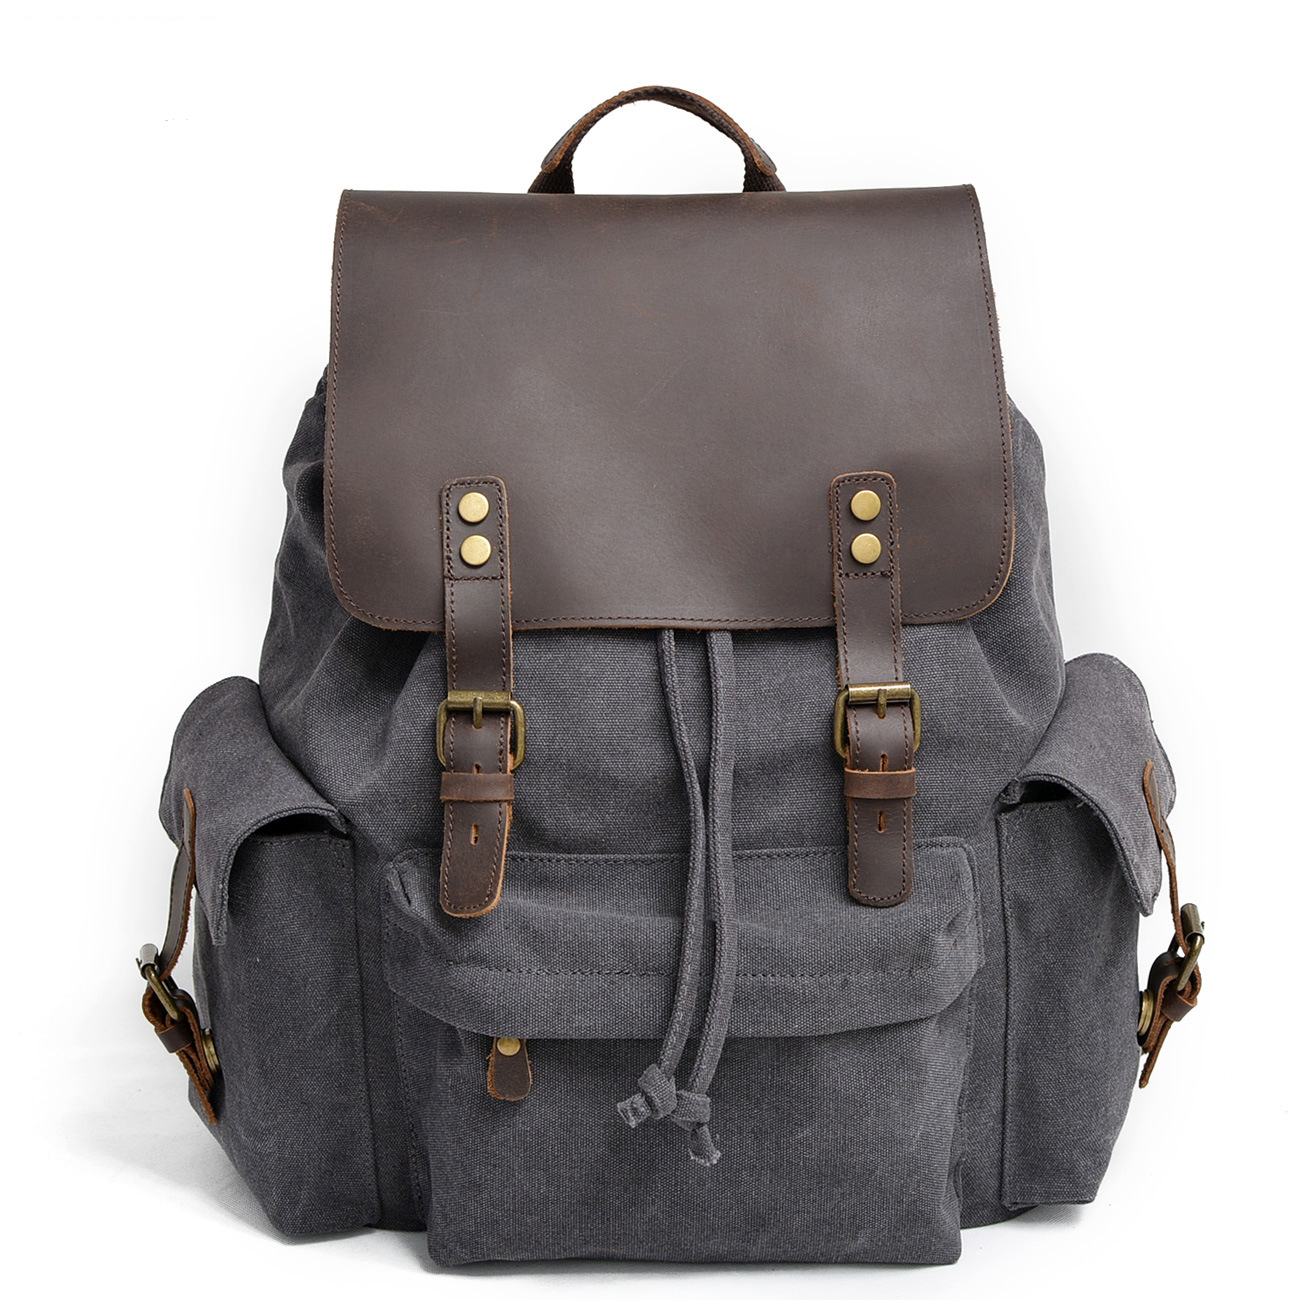 Brand Designer Men Travel Bag Rucksack Vintage Laptop Backpack Canvas bag Crazy Horse Leather School Bag Bolsa Teenager bagpack мфу canon maxify mb2140 0959c007